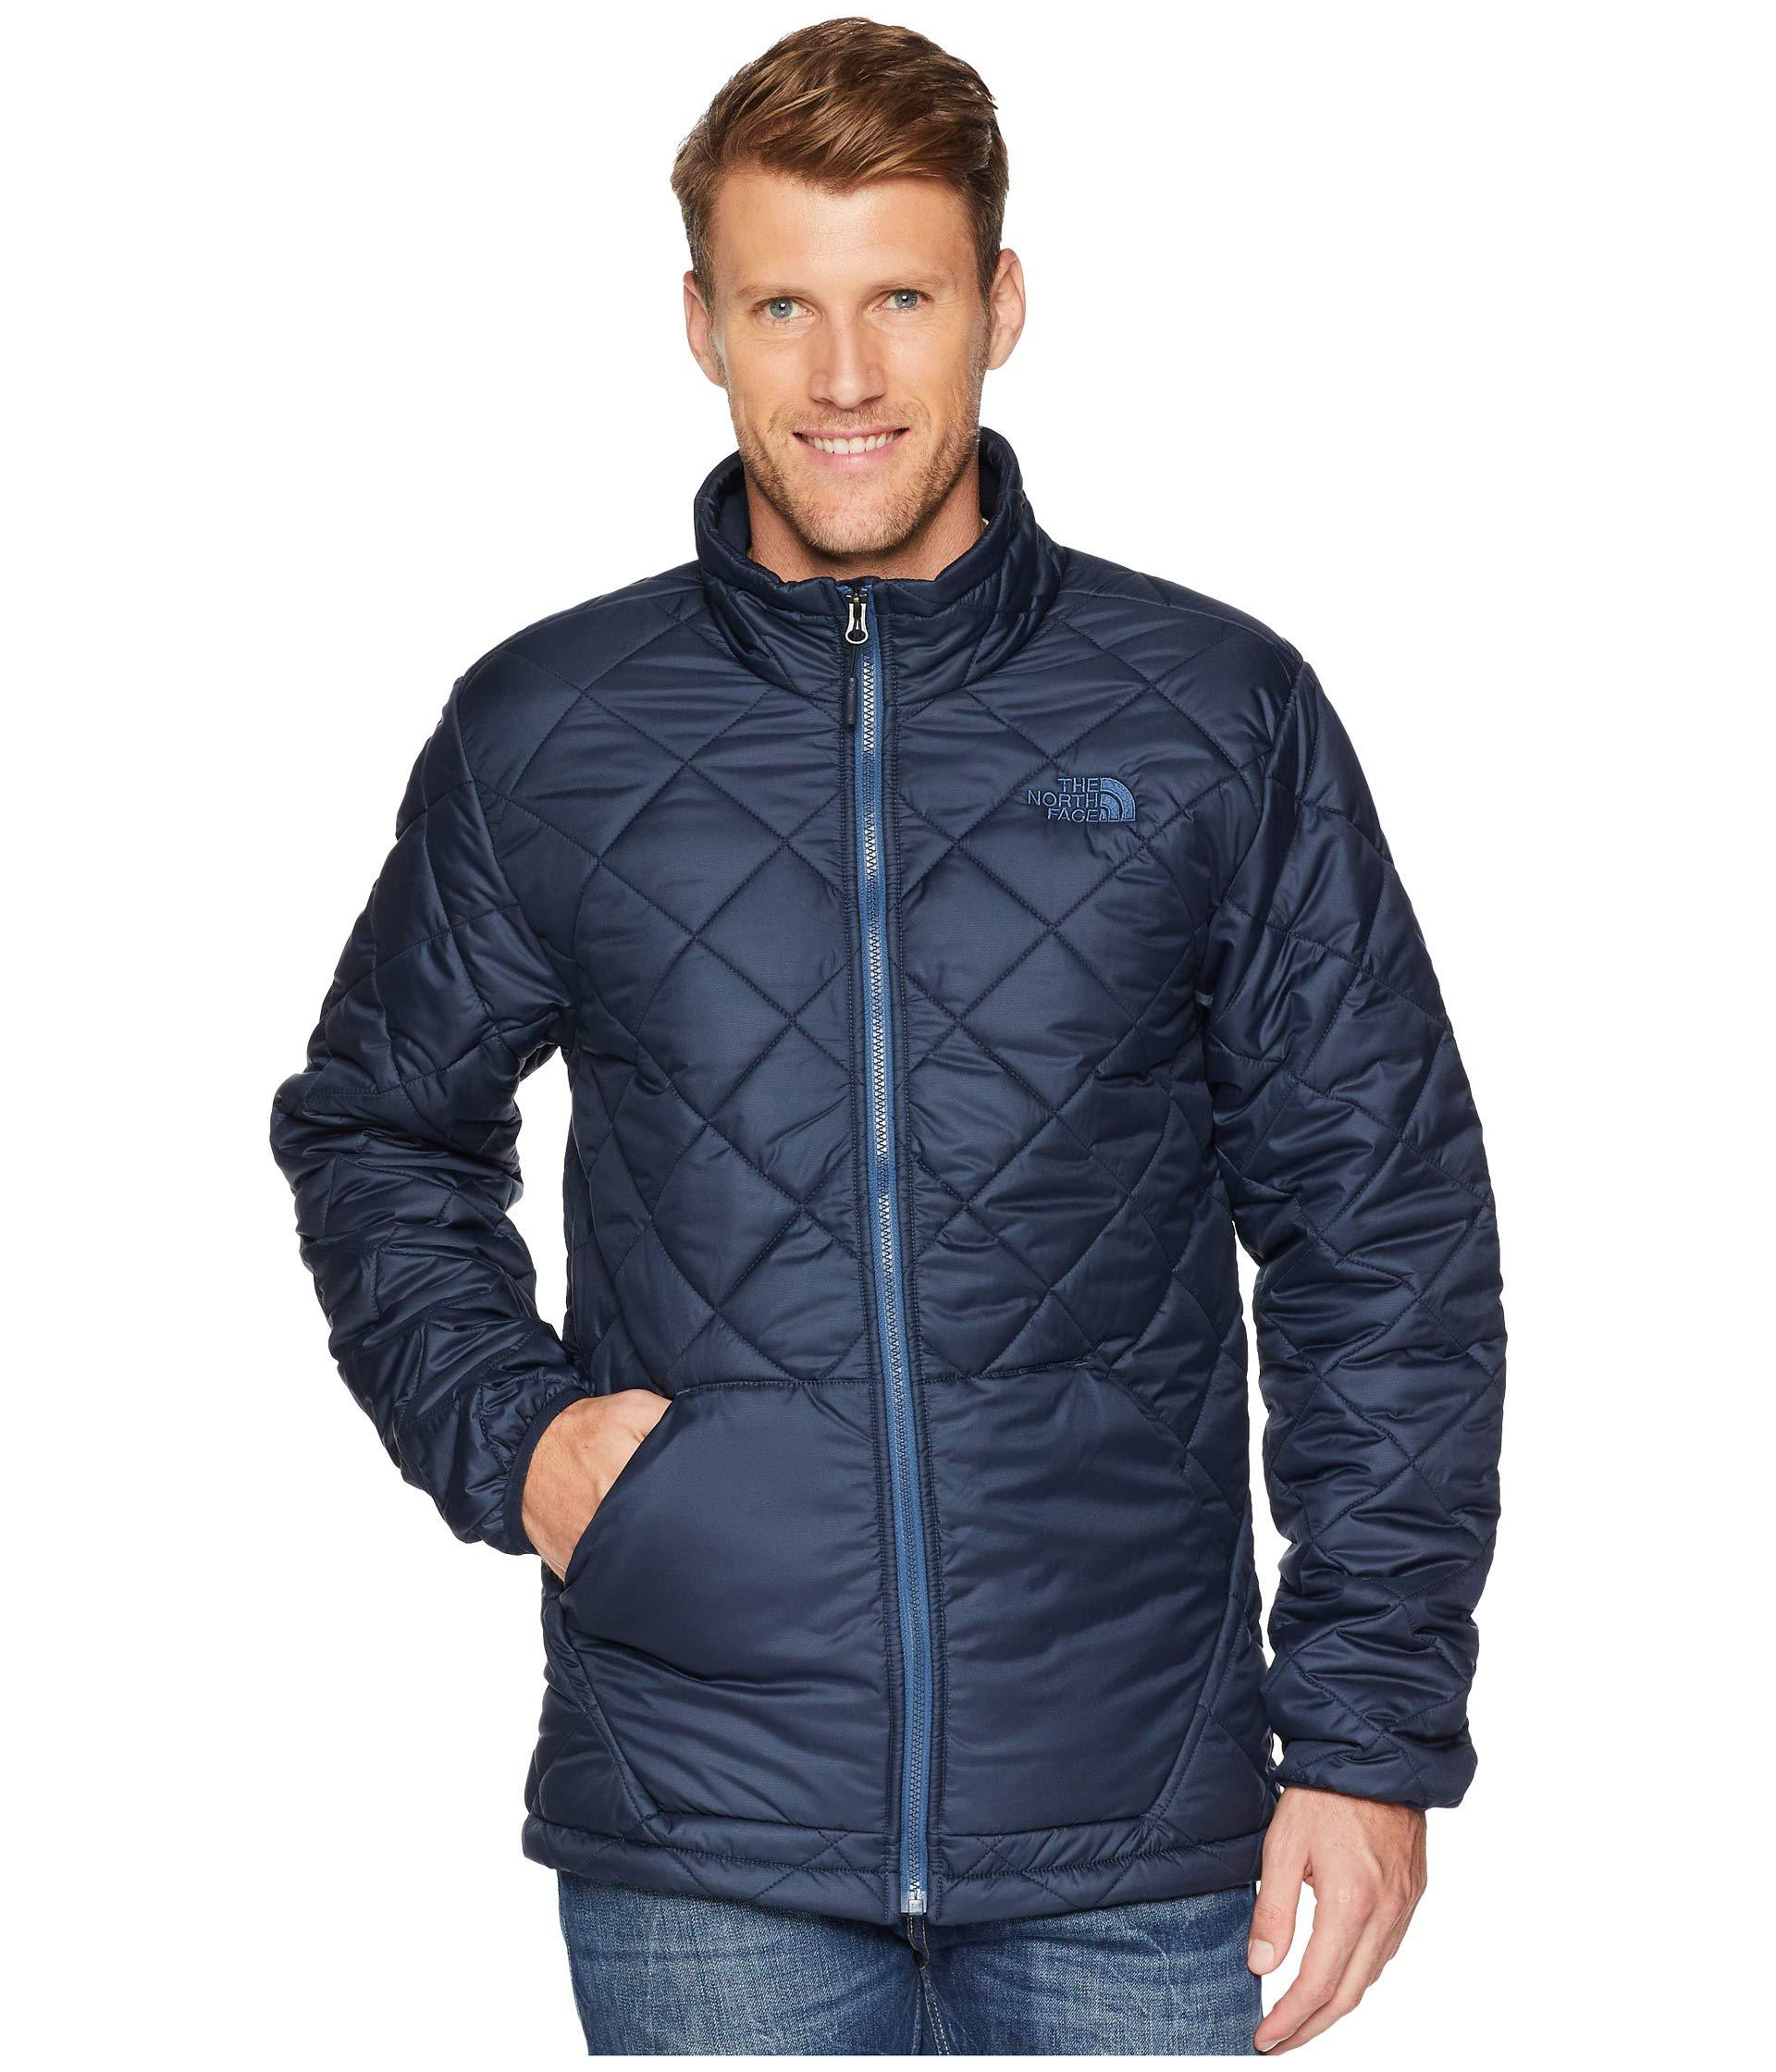 coupon code for the north face. blue cervas jacket urban navy mens coat  2e601 b2478 ce692cd1b